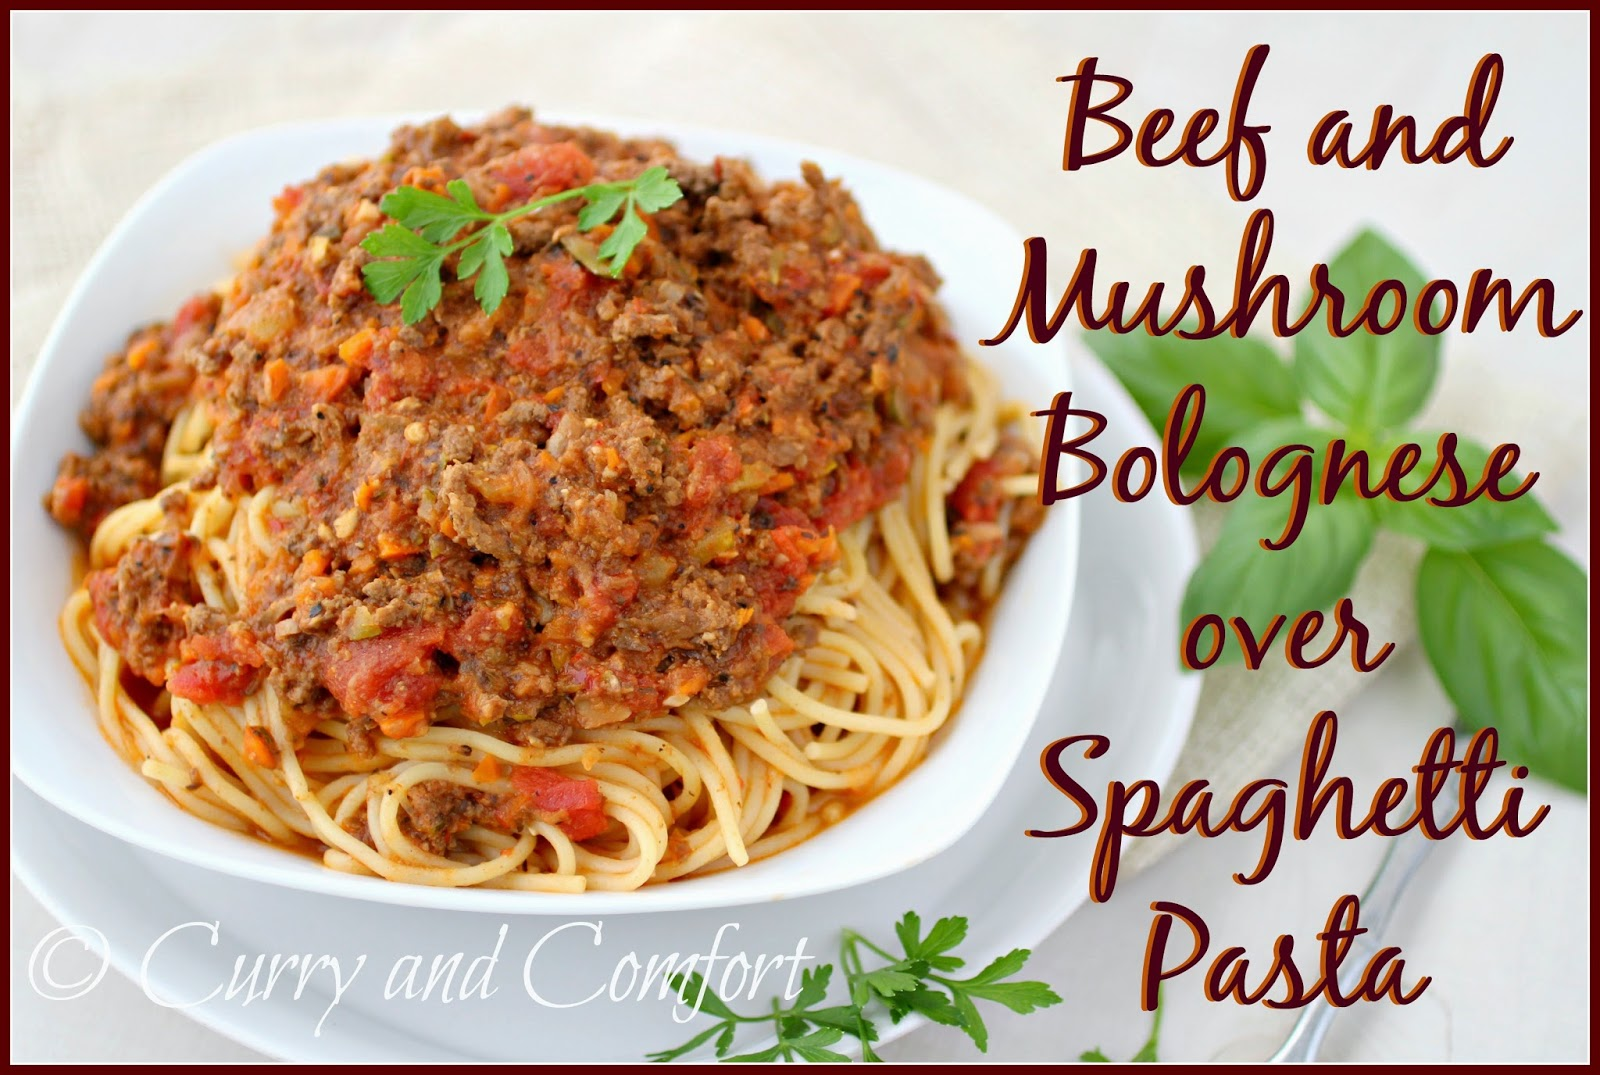 Kitchen Simmer Beef And Mushroom Bolognese Over Spaghetti Pasta